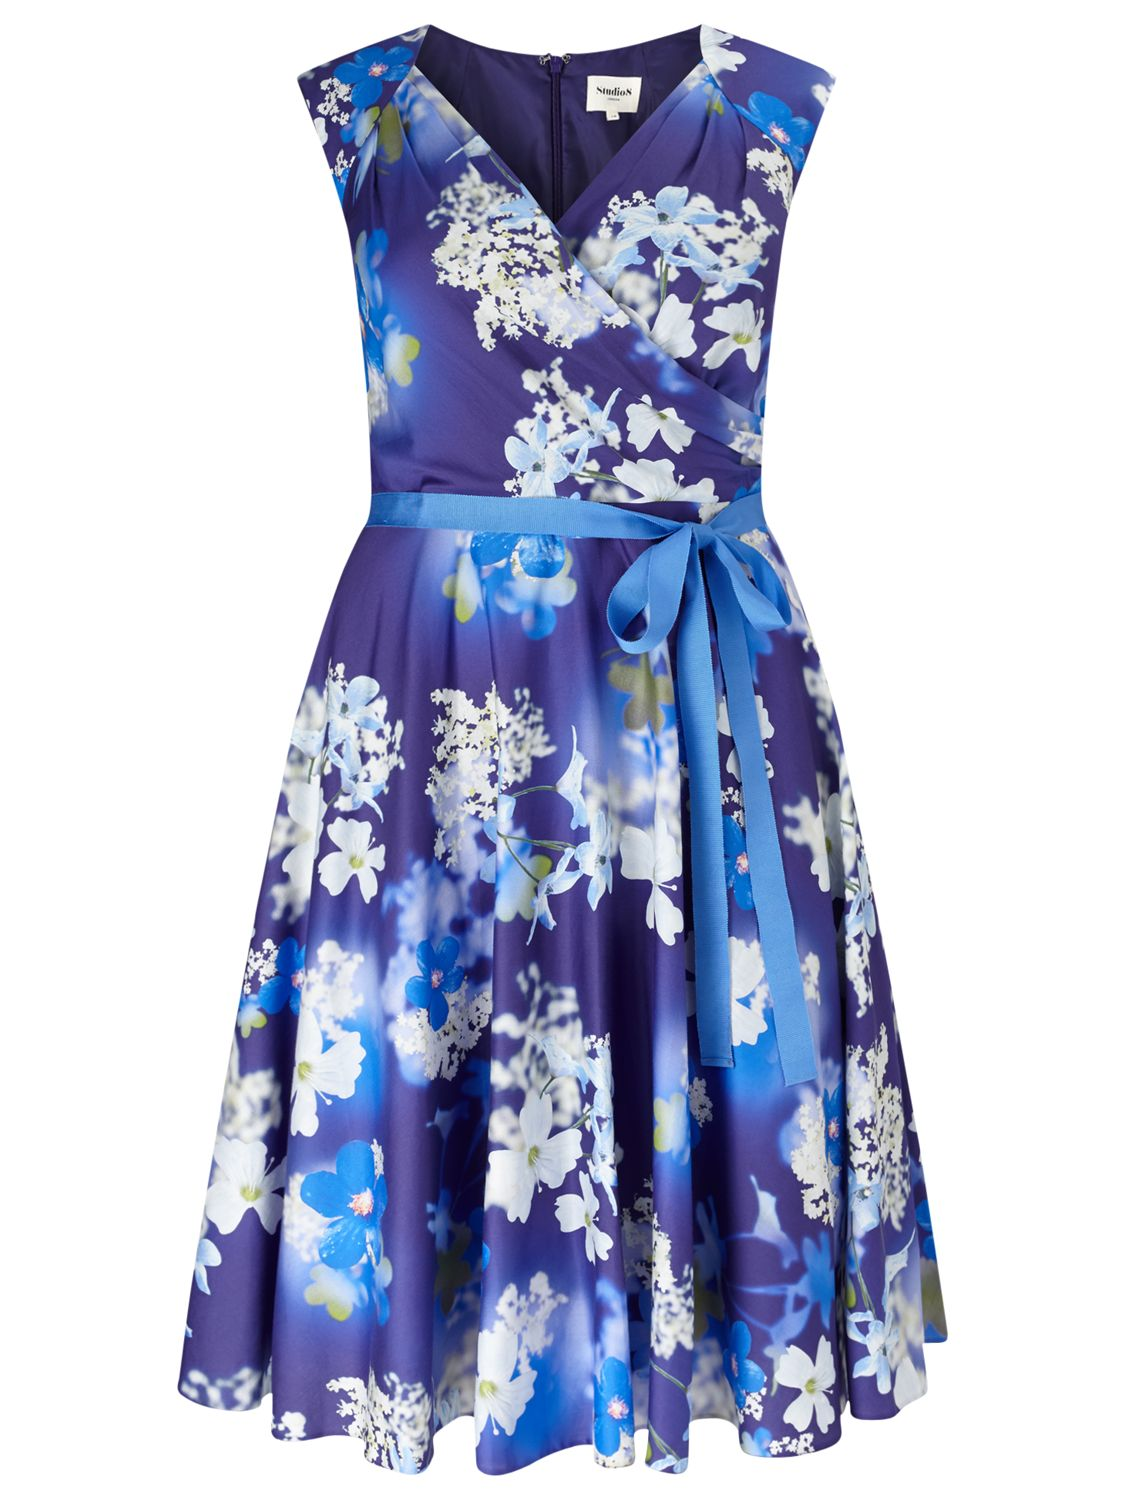 Studio 8 Studio 8 Charlene Dress, Blue